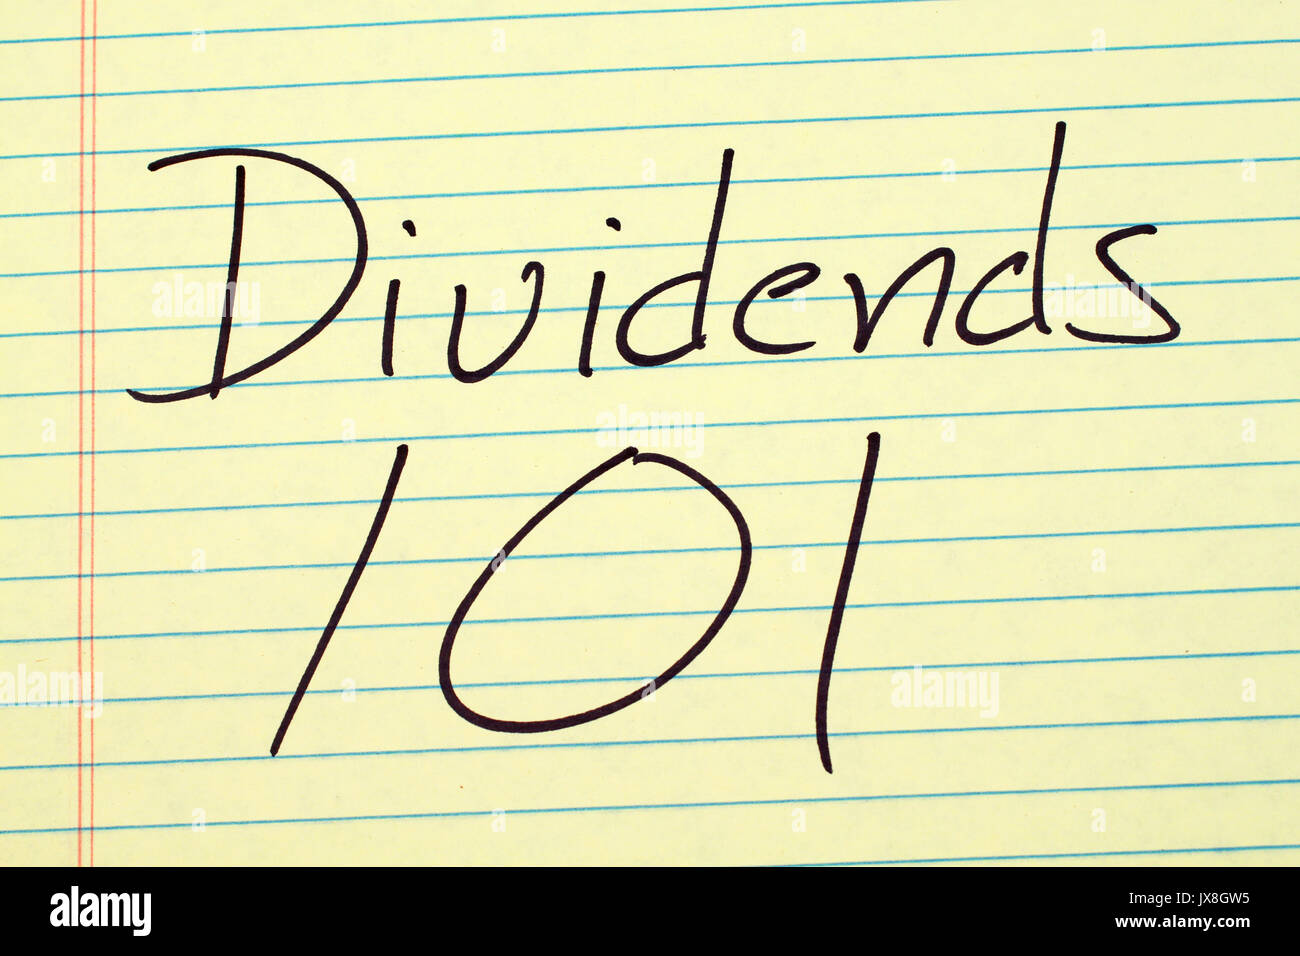 The words 'Dividends 101' on a yellow legal pad - Stock Image